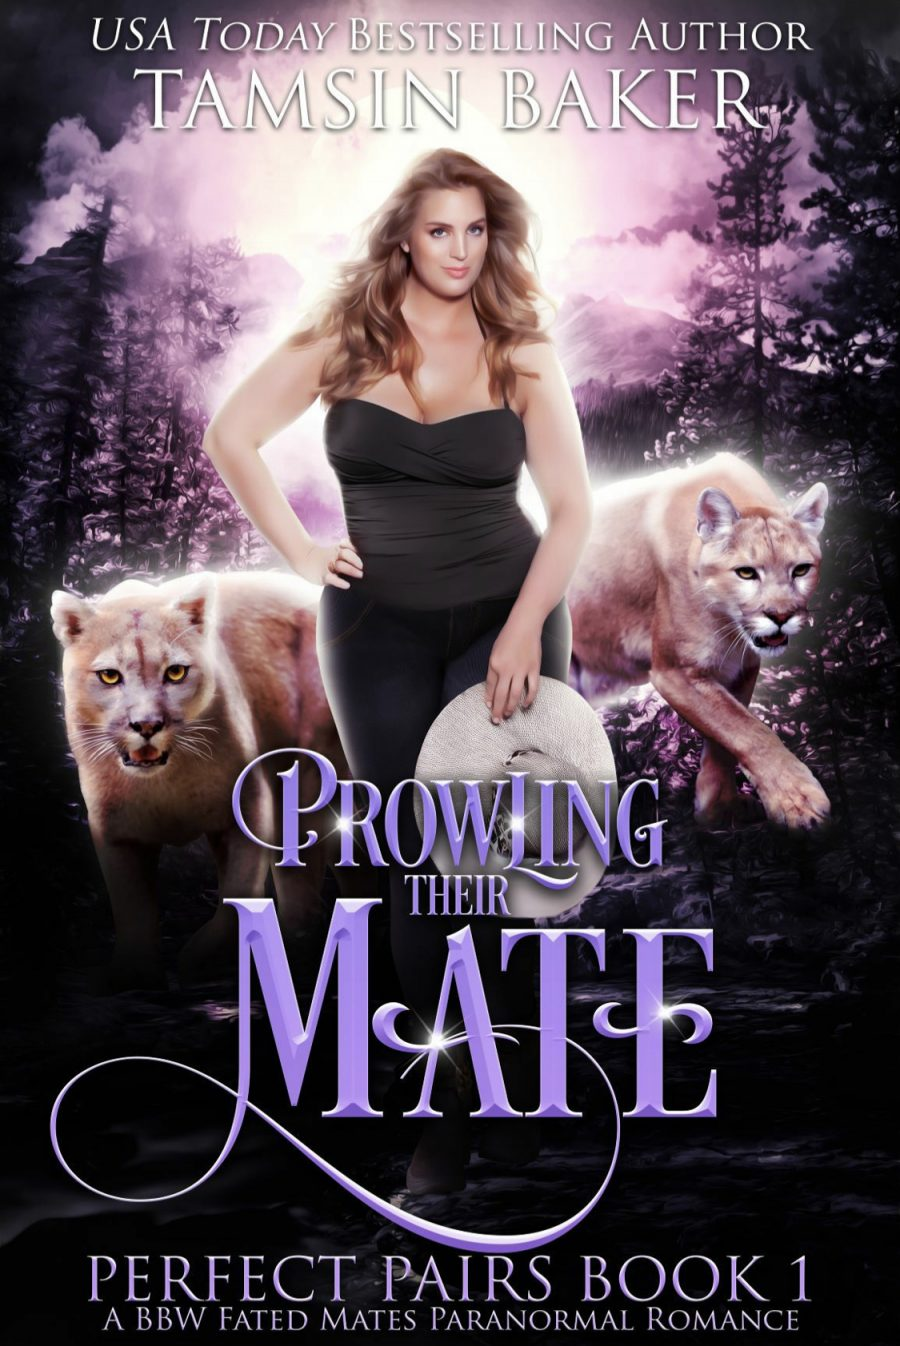 Prowling Their Mate by Tasmin Baker - A Book Review #BookReview #PNR #Menage #FatedMates #BBW #Shifters #HEA #StandAlone #KindleUnlimited #KU